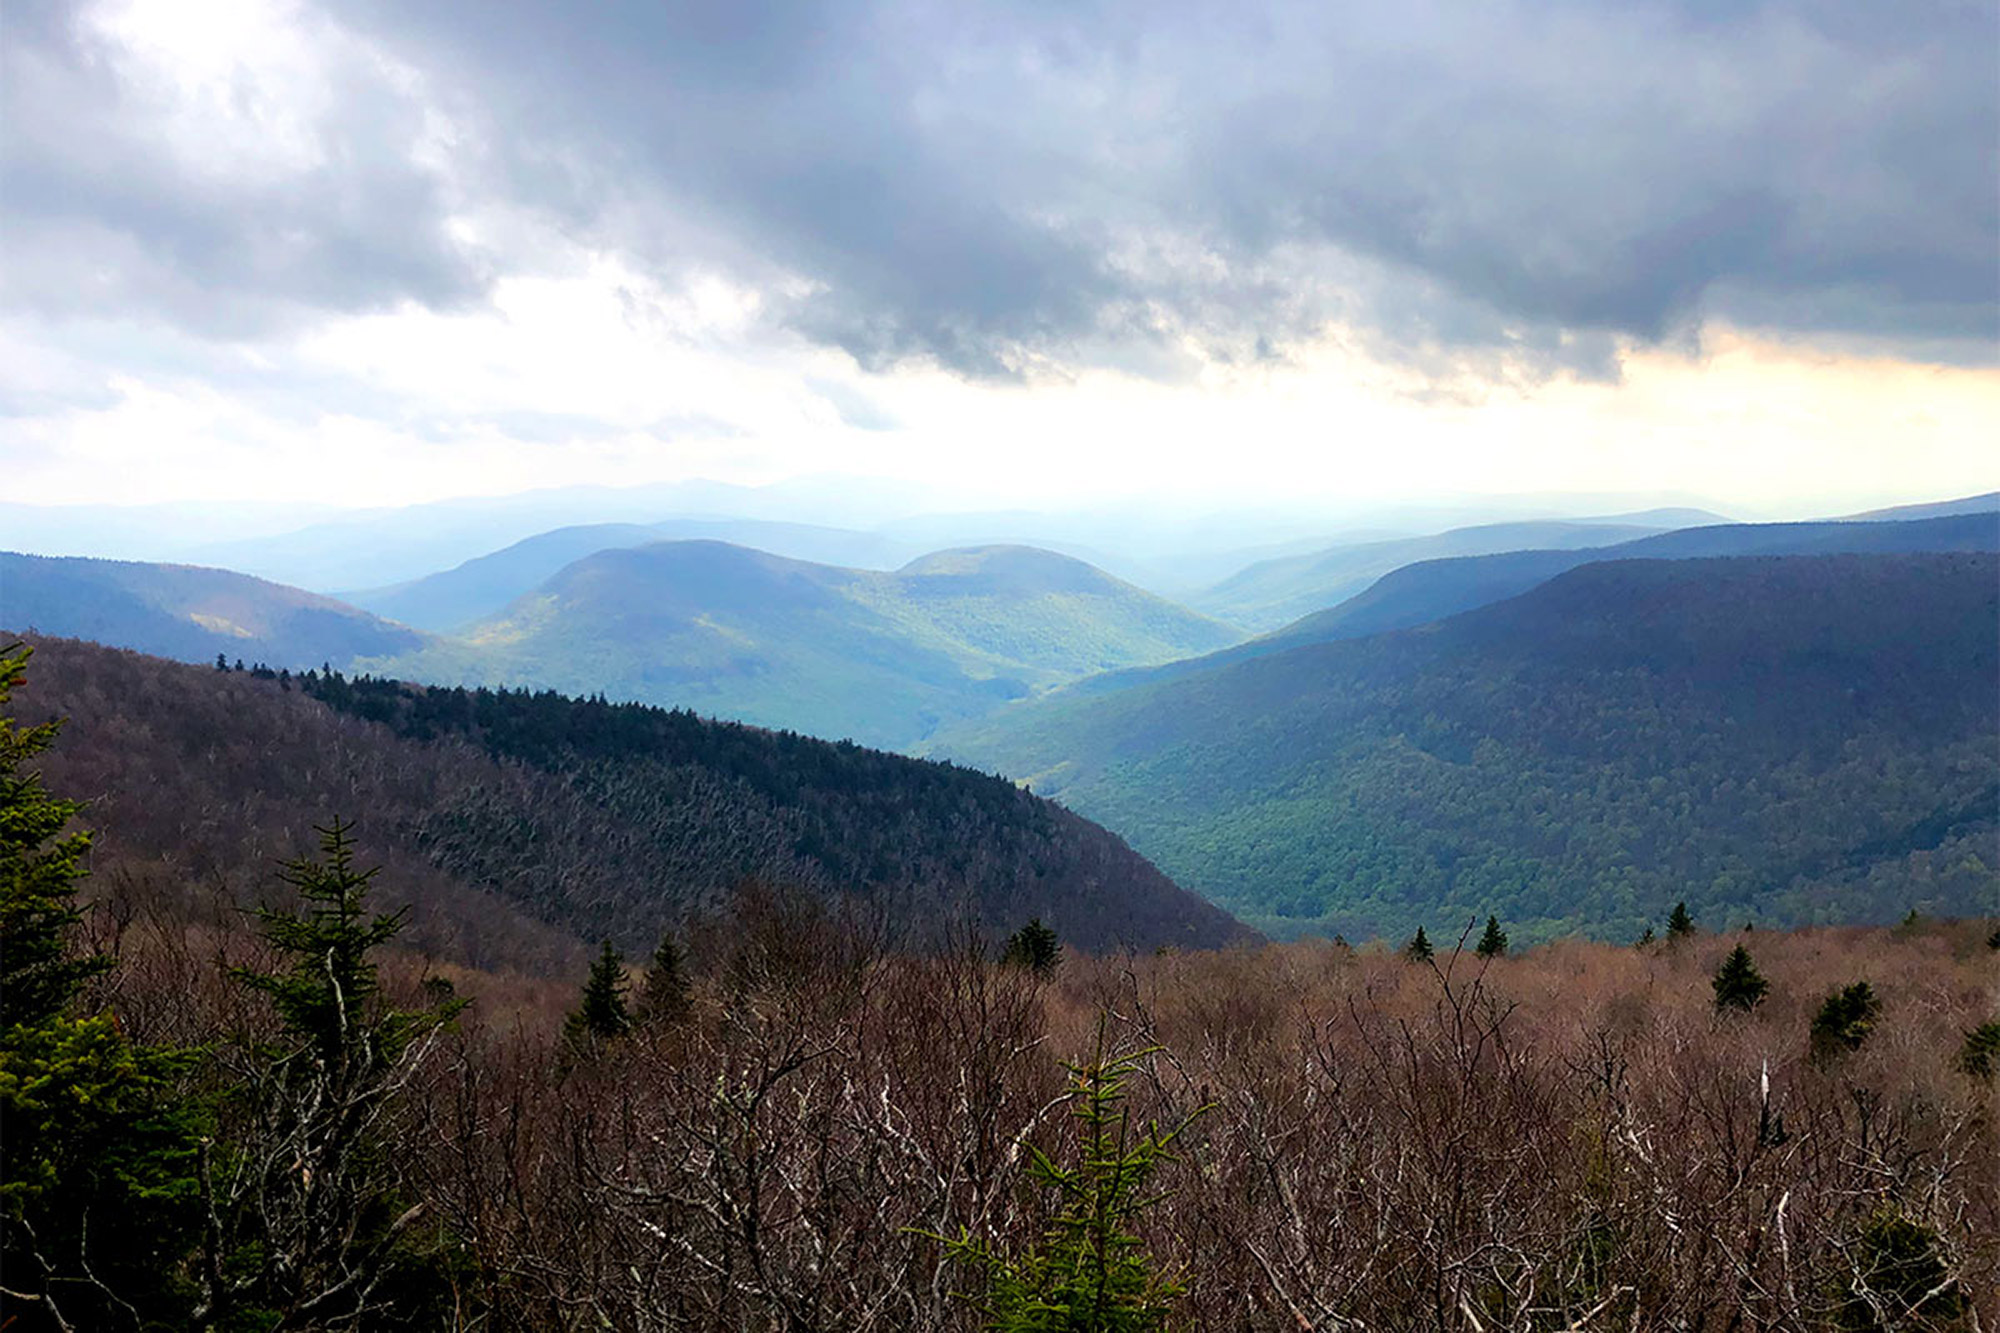 The view from Orchard Point on Plateau Mountain.   Credit: John Lepak